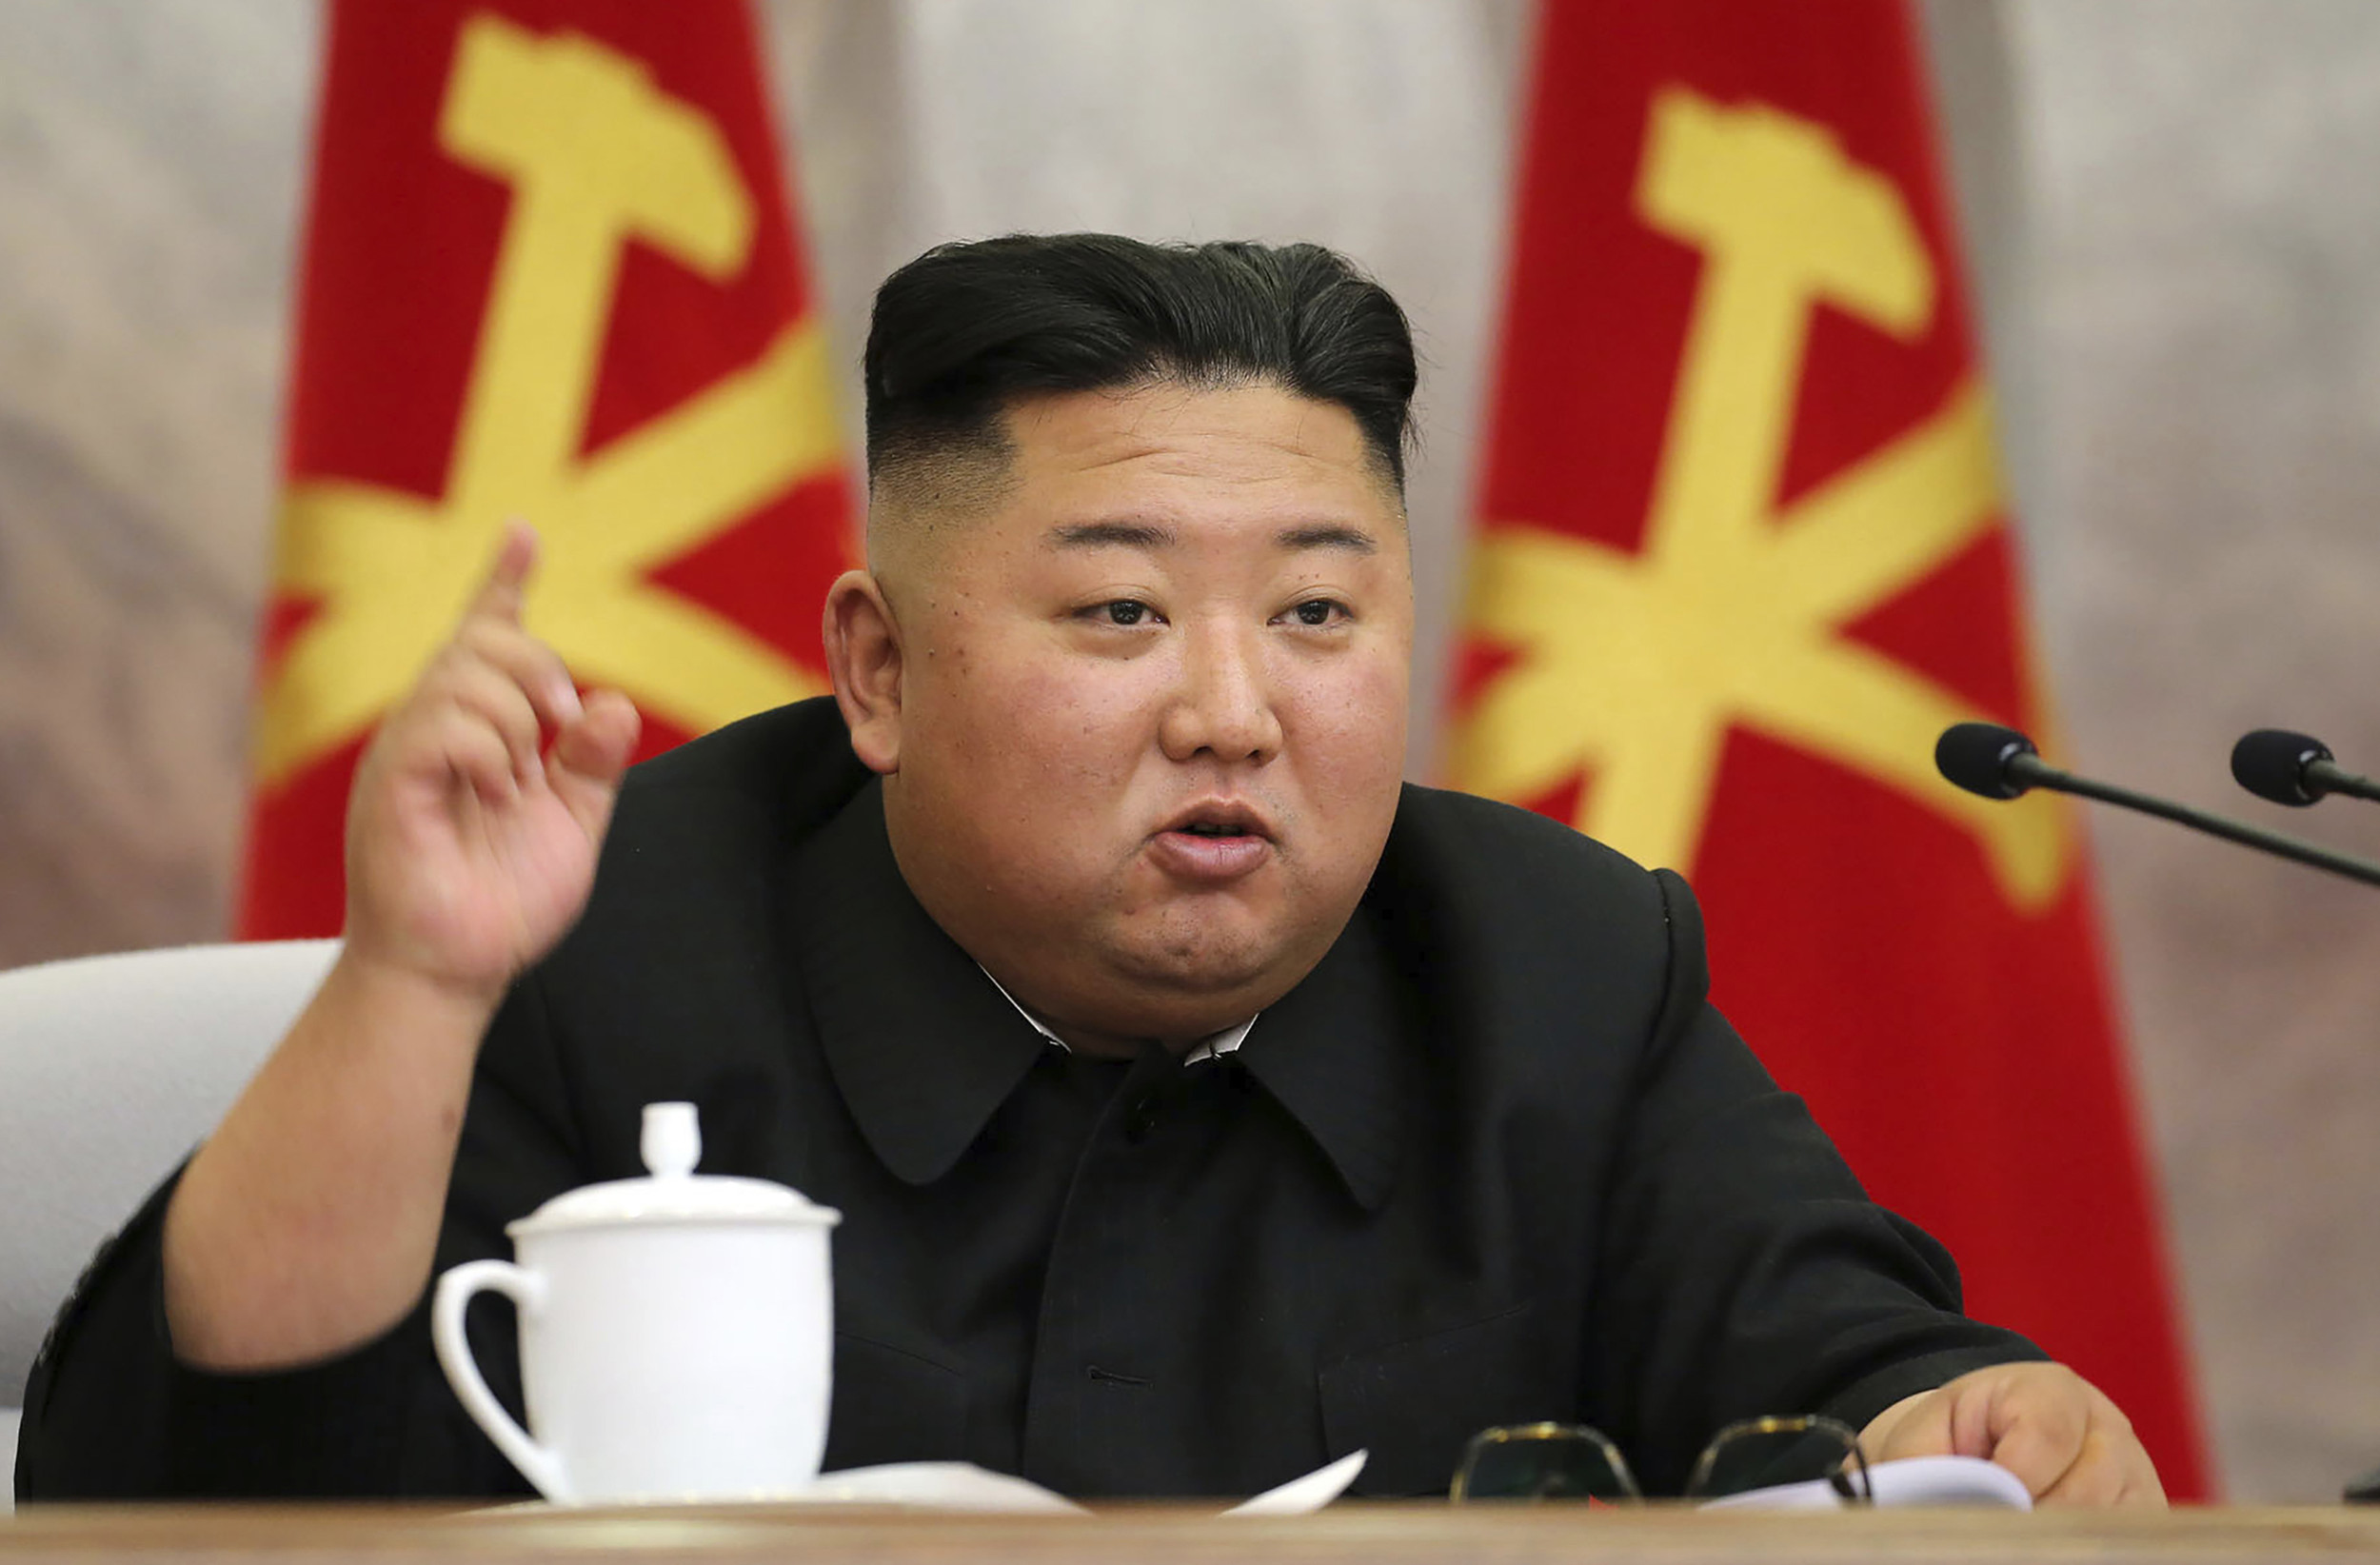 North: Kim suspended action against South for Korean impasse